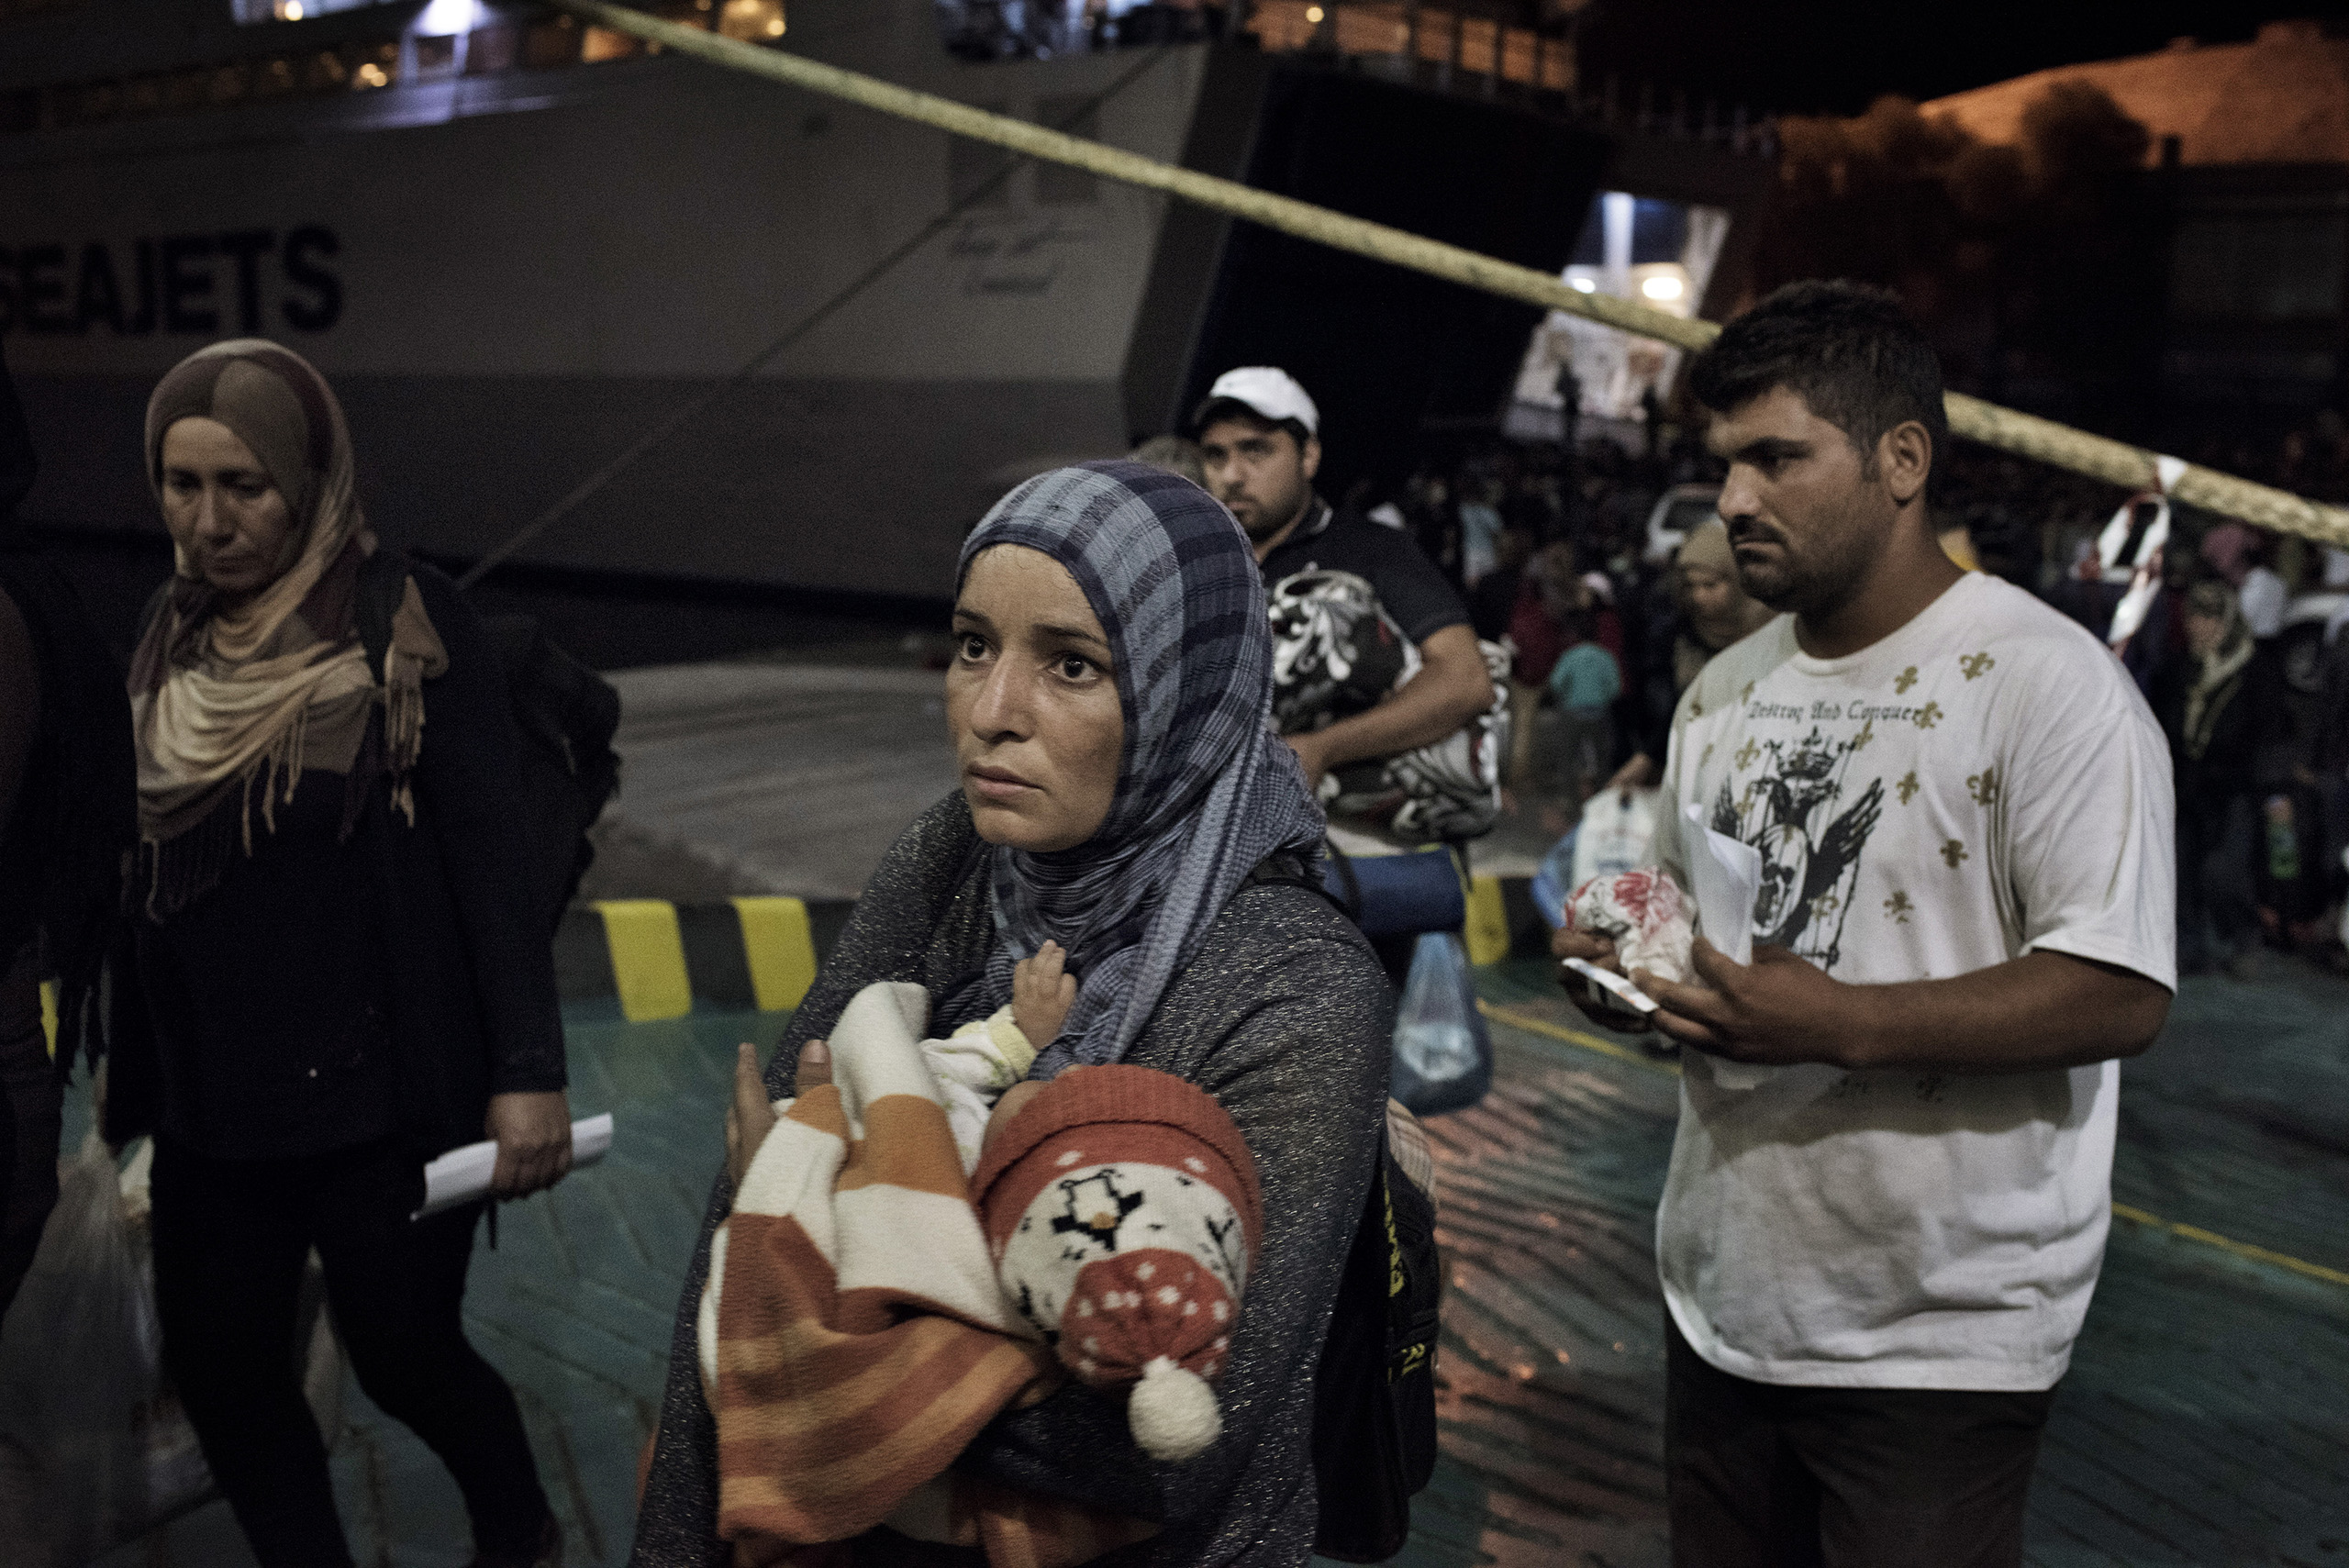 Migrants come aboard a cruise ship that the Greek government chartered to transport them to Athens from the Greek island of Lesbos. The regular ferry service traveling this route was unable to cope with the unprecedented influx of migrants going through Greece to Western Europe from various conflict zones across the Muslim world.